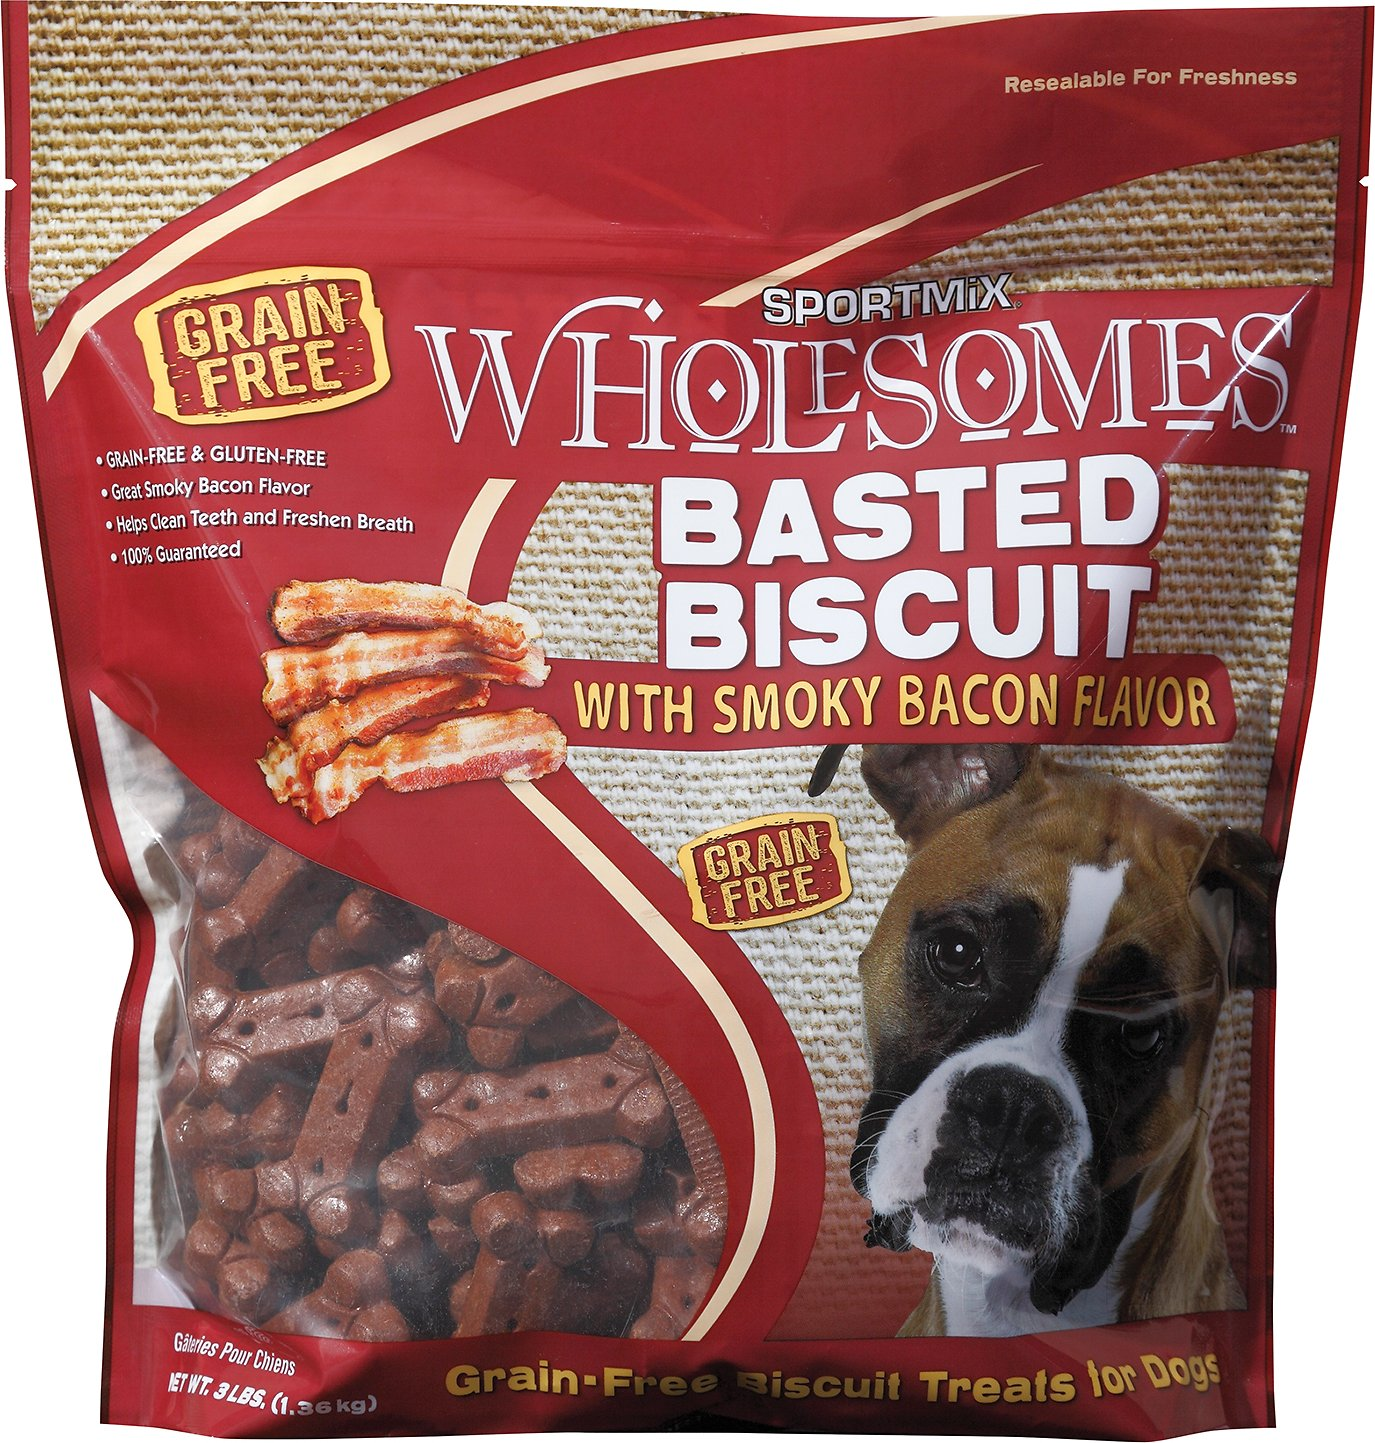 SPORTMiX Wholesomes Grain-Free Premium Basted Biscuit with Hickory Smoked Flavor Dog Treats (Size: 3-lb bag) Image